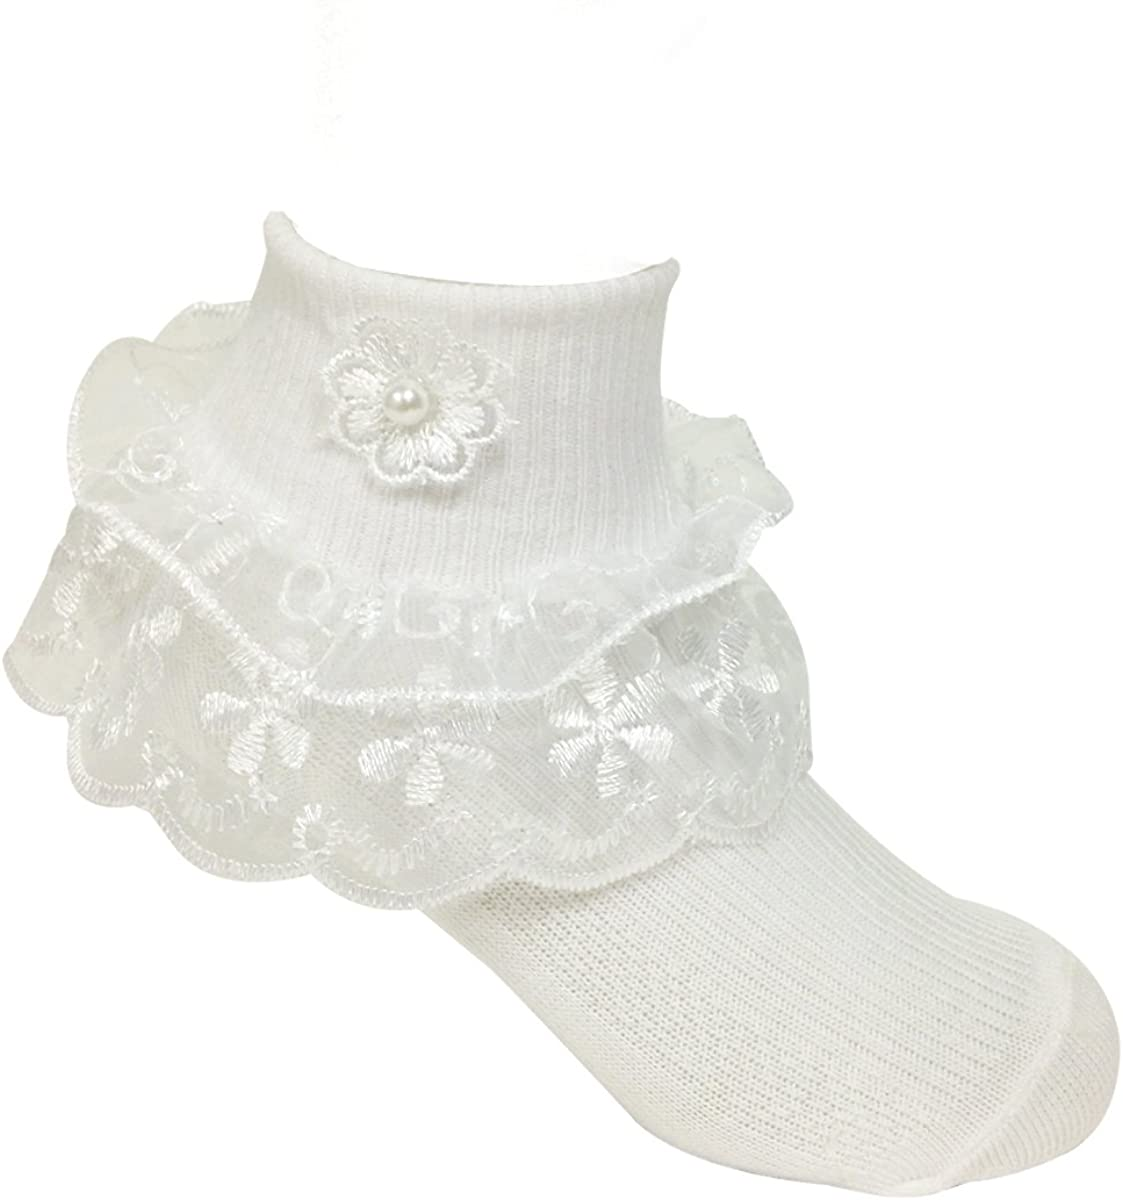 Wrapables Lil Miss Daisy Double Layer Lace Ruffle Socks, Set of 2